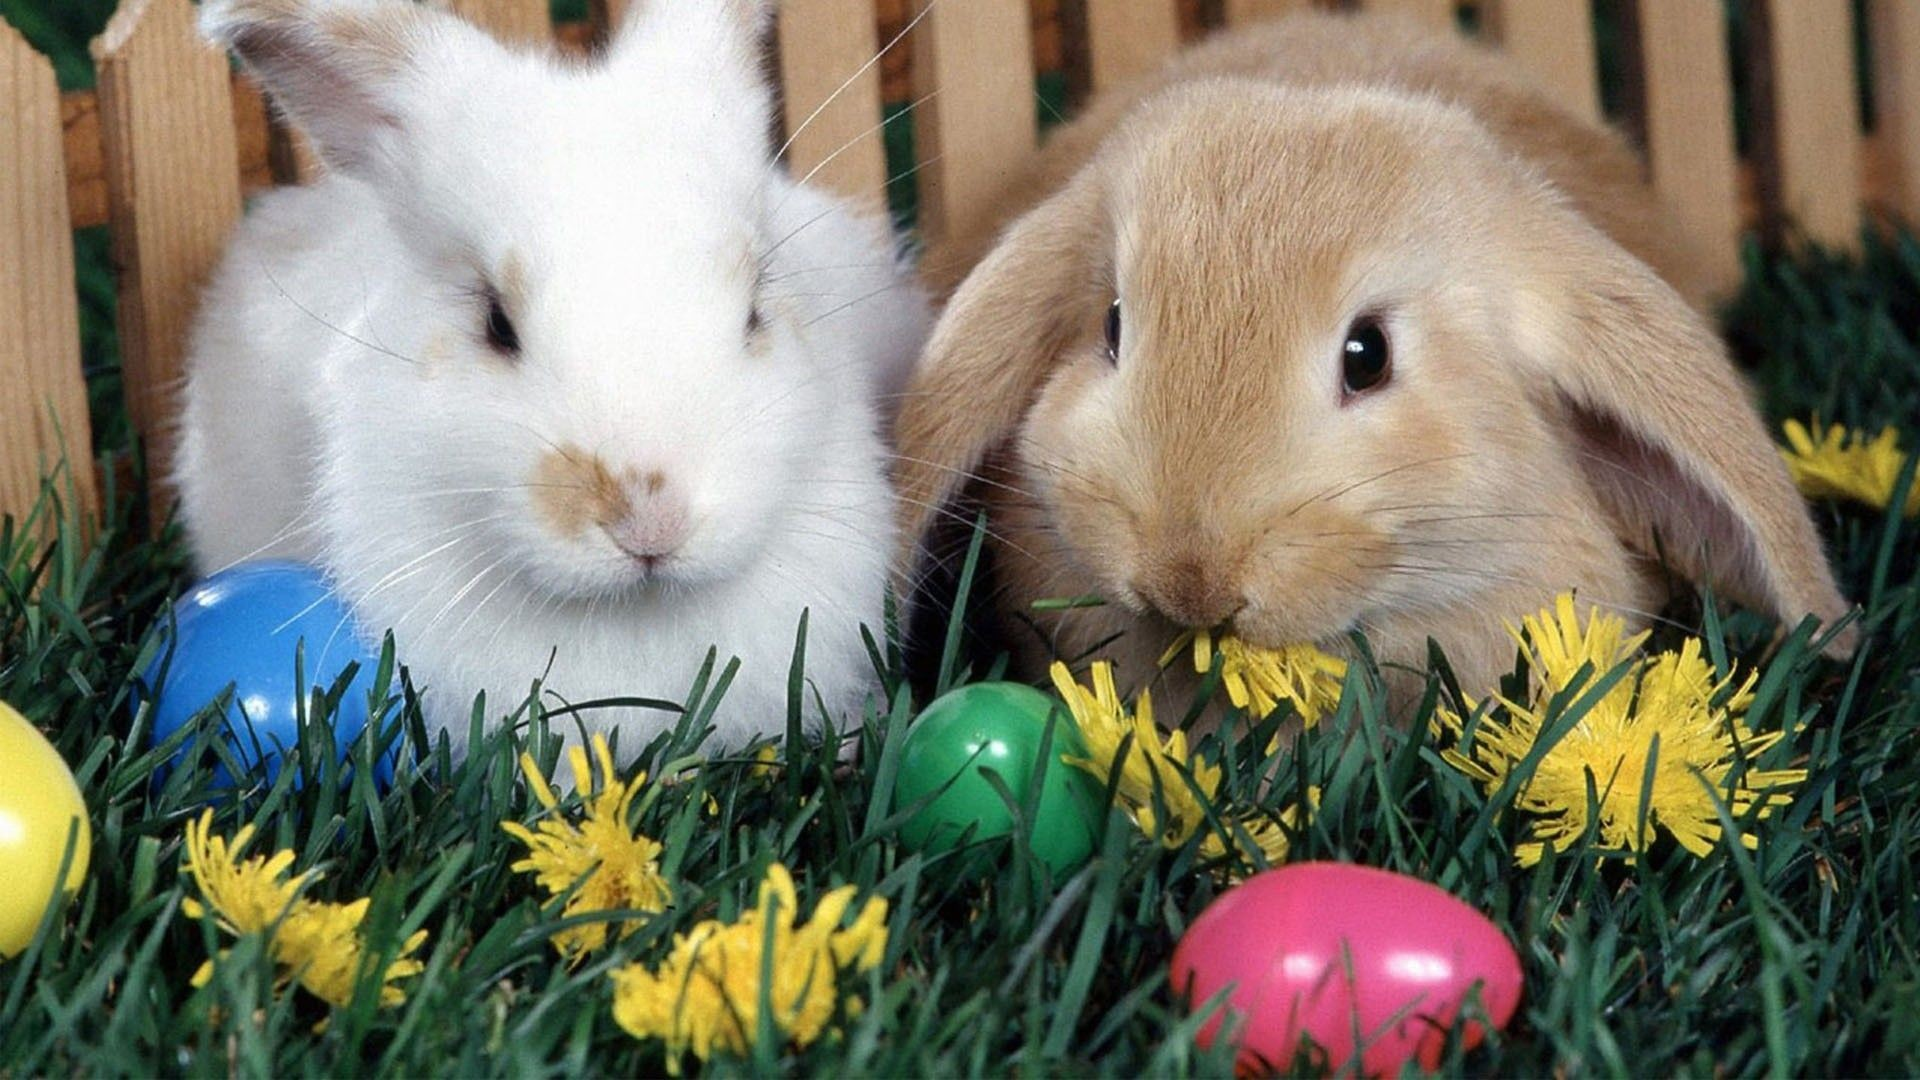 Easter bunny wallpapers 64 images - Easter bunny wallpaper ...